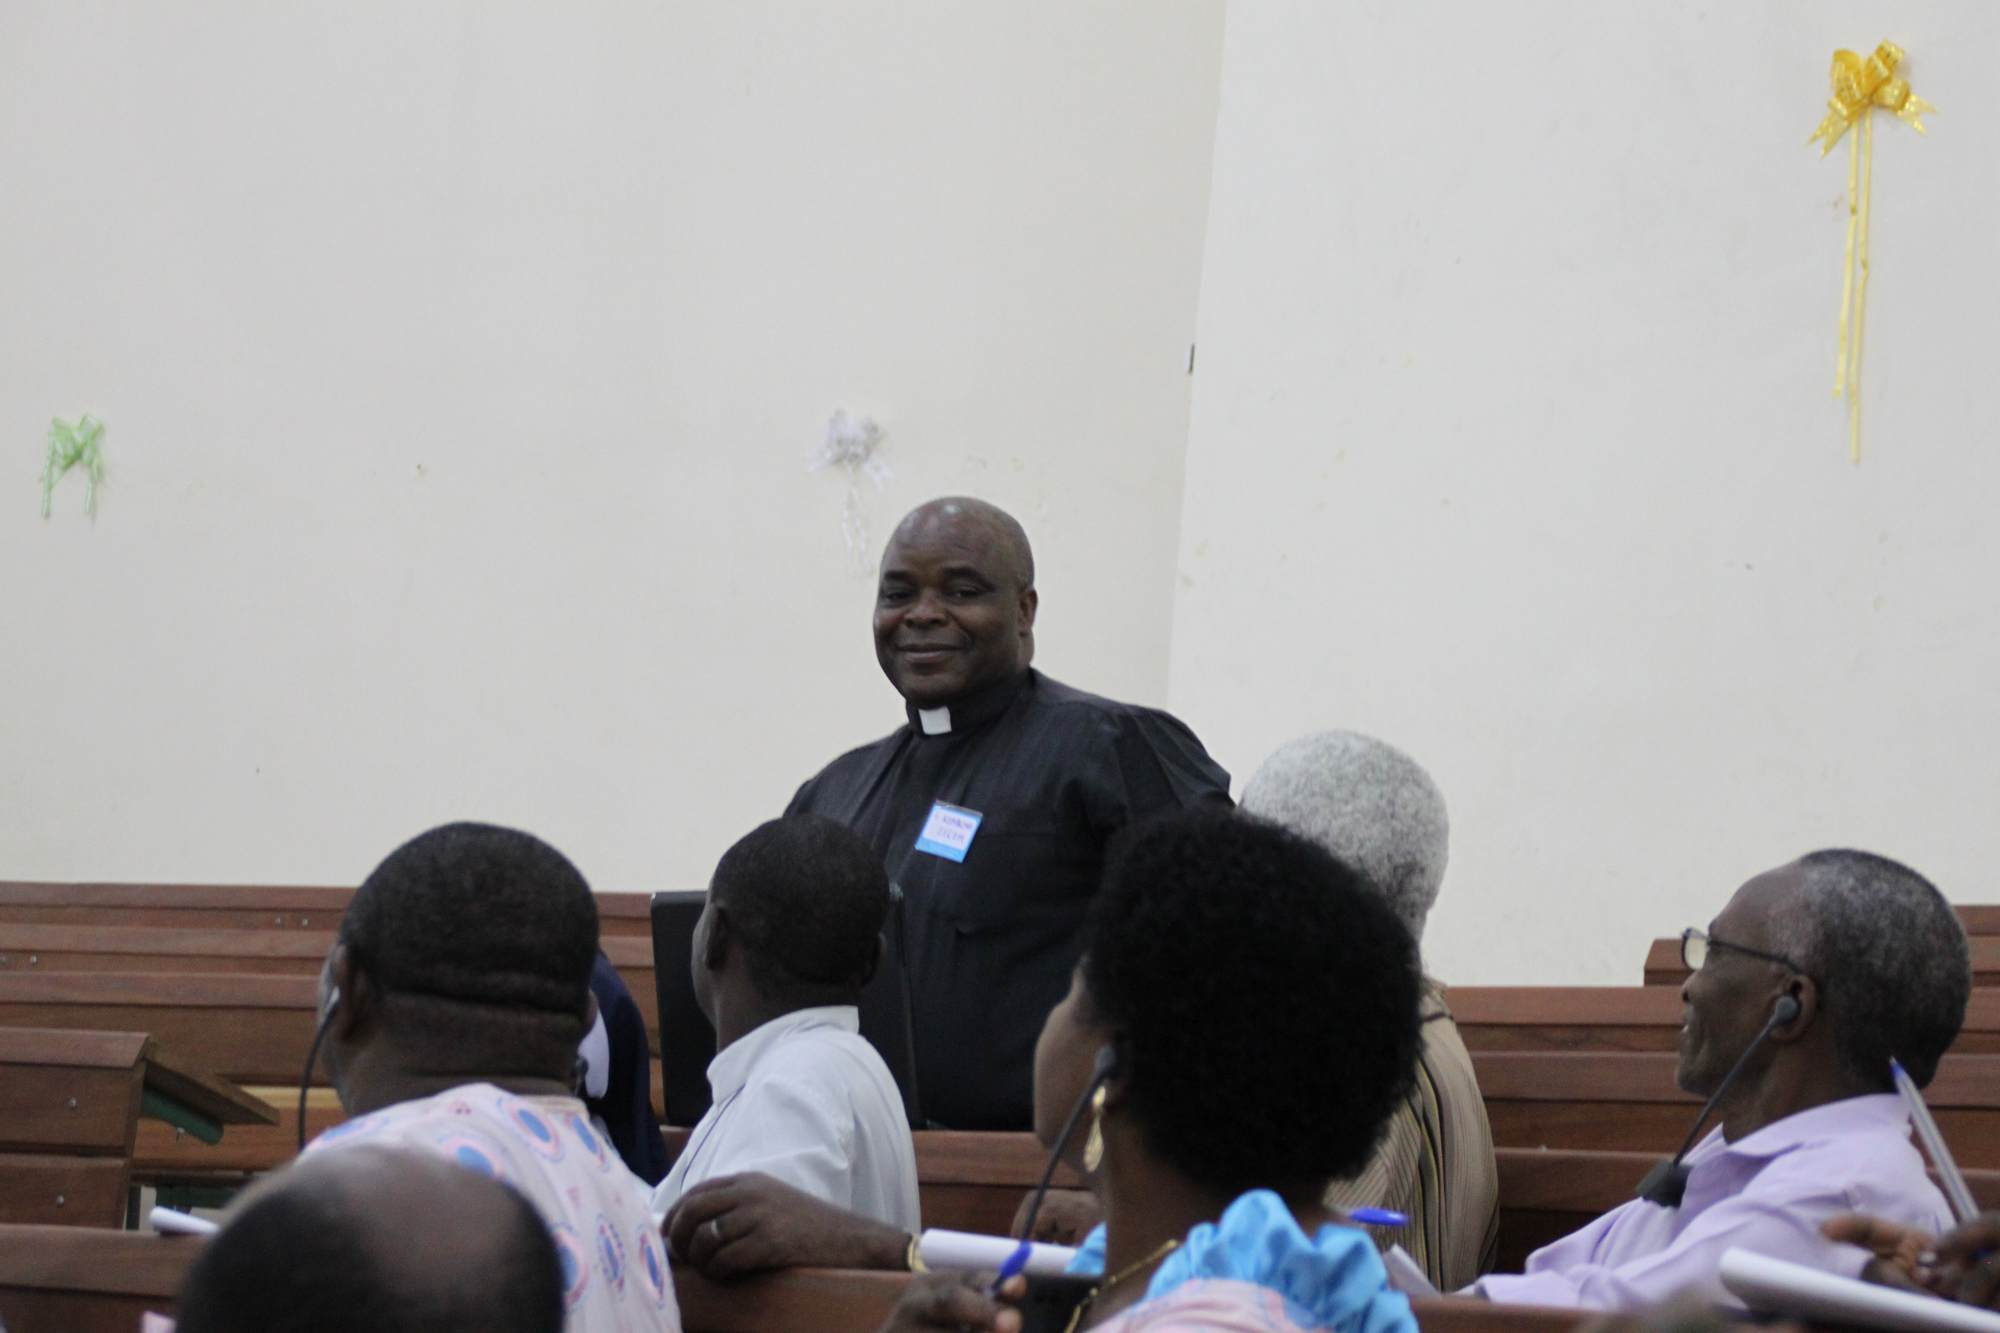 Presentation of the represenant of SECAM, Father Joseph Komakoma  2011